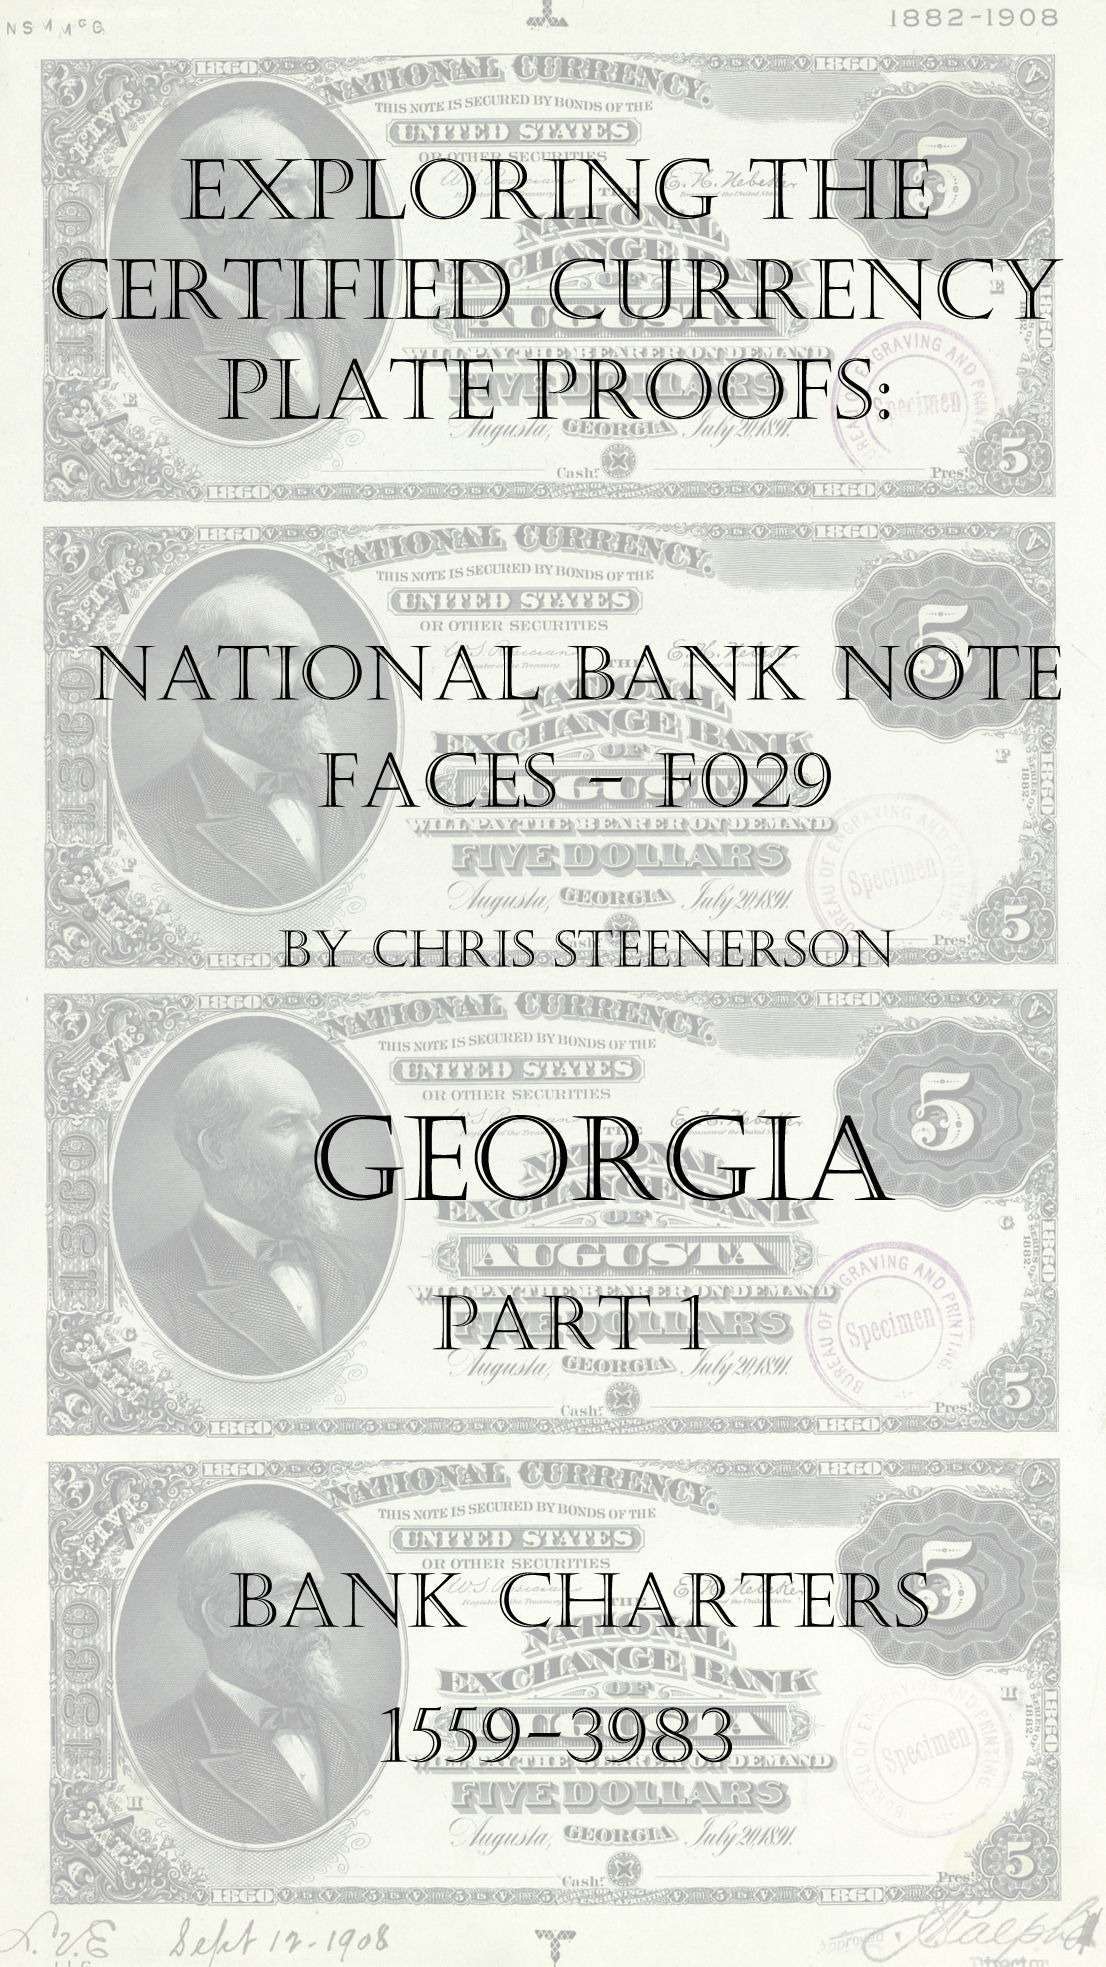 Georgia National Bank Note Currency Proofs